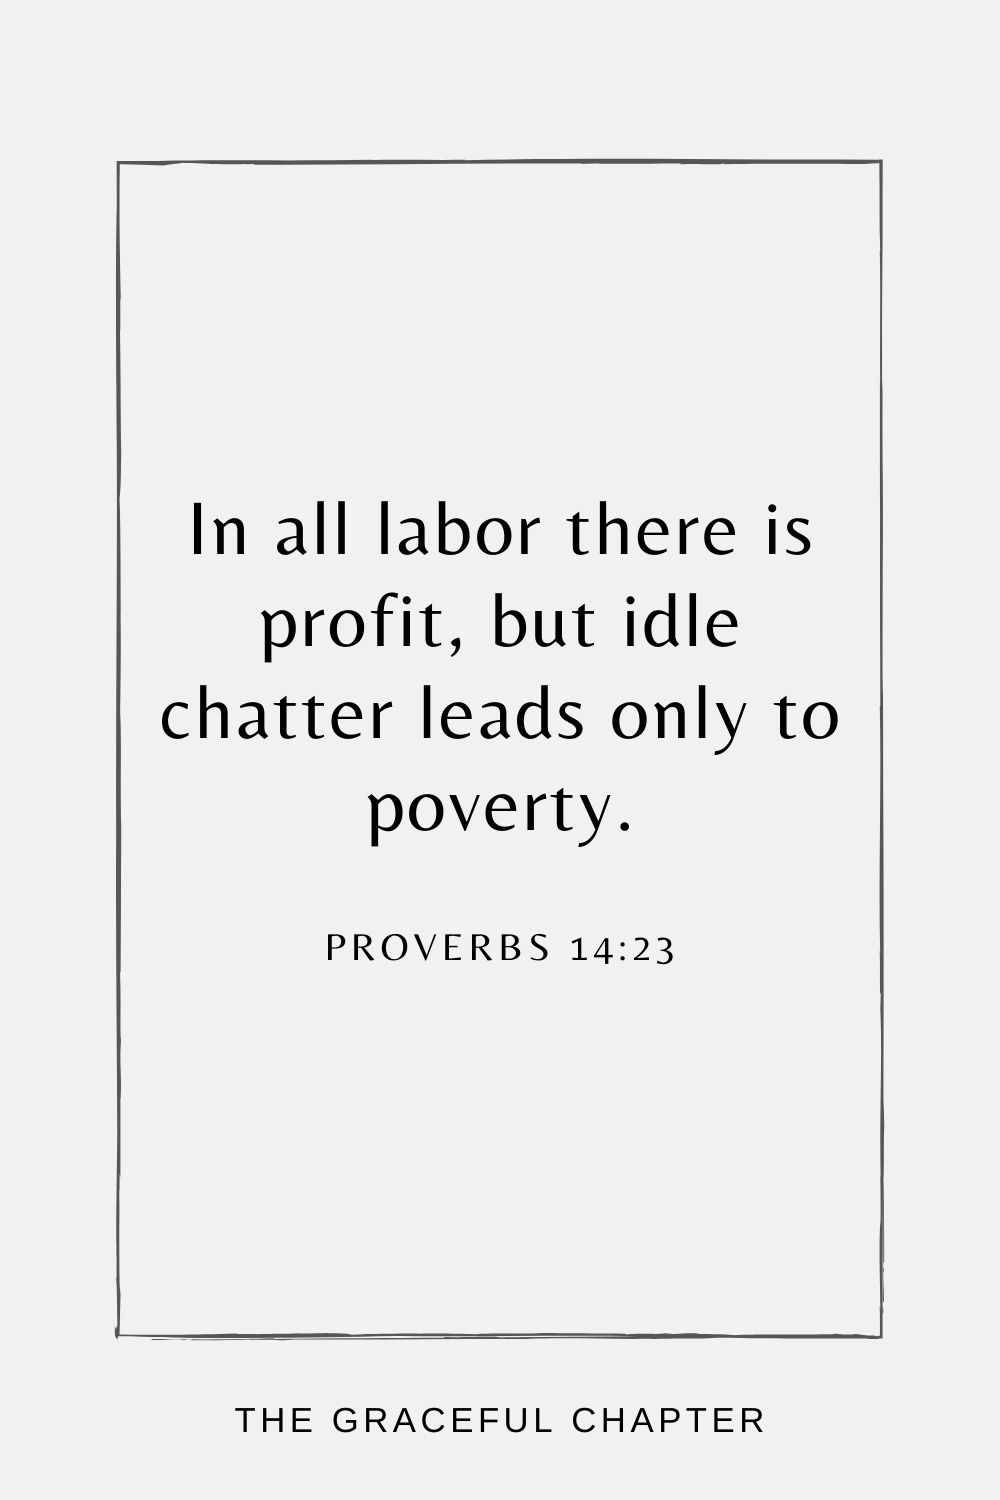 In all labor there is profit, but idle chatter leads only to poverty. Proverbs 14:23